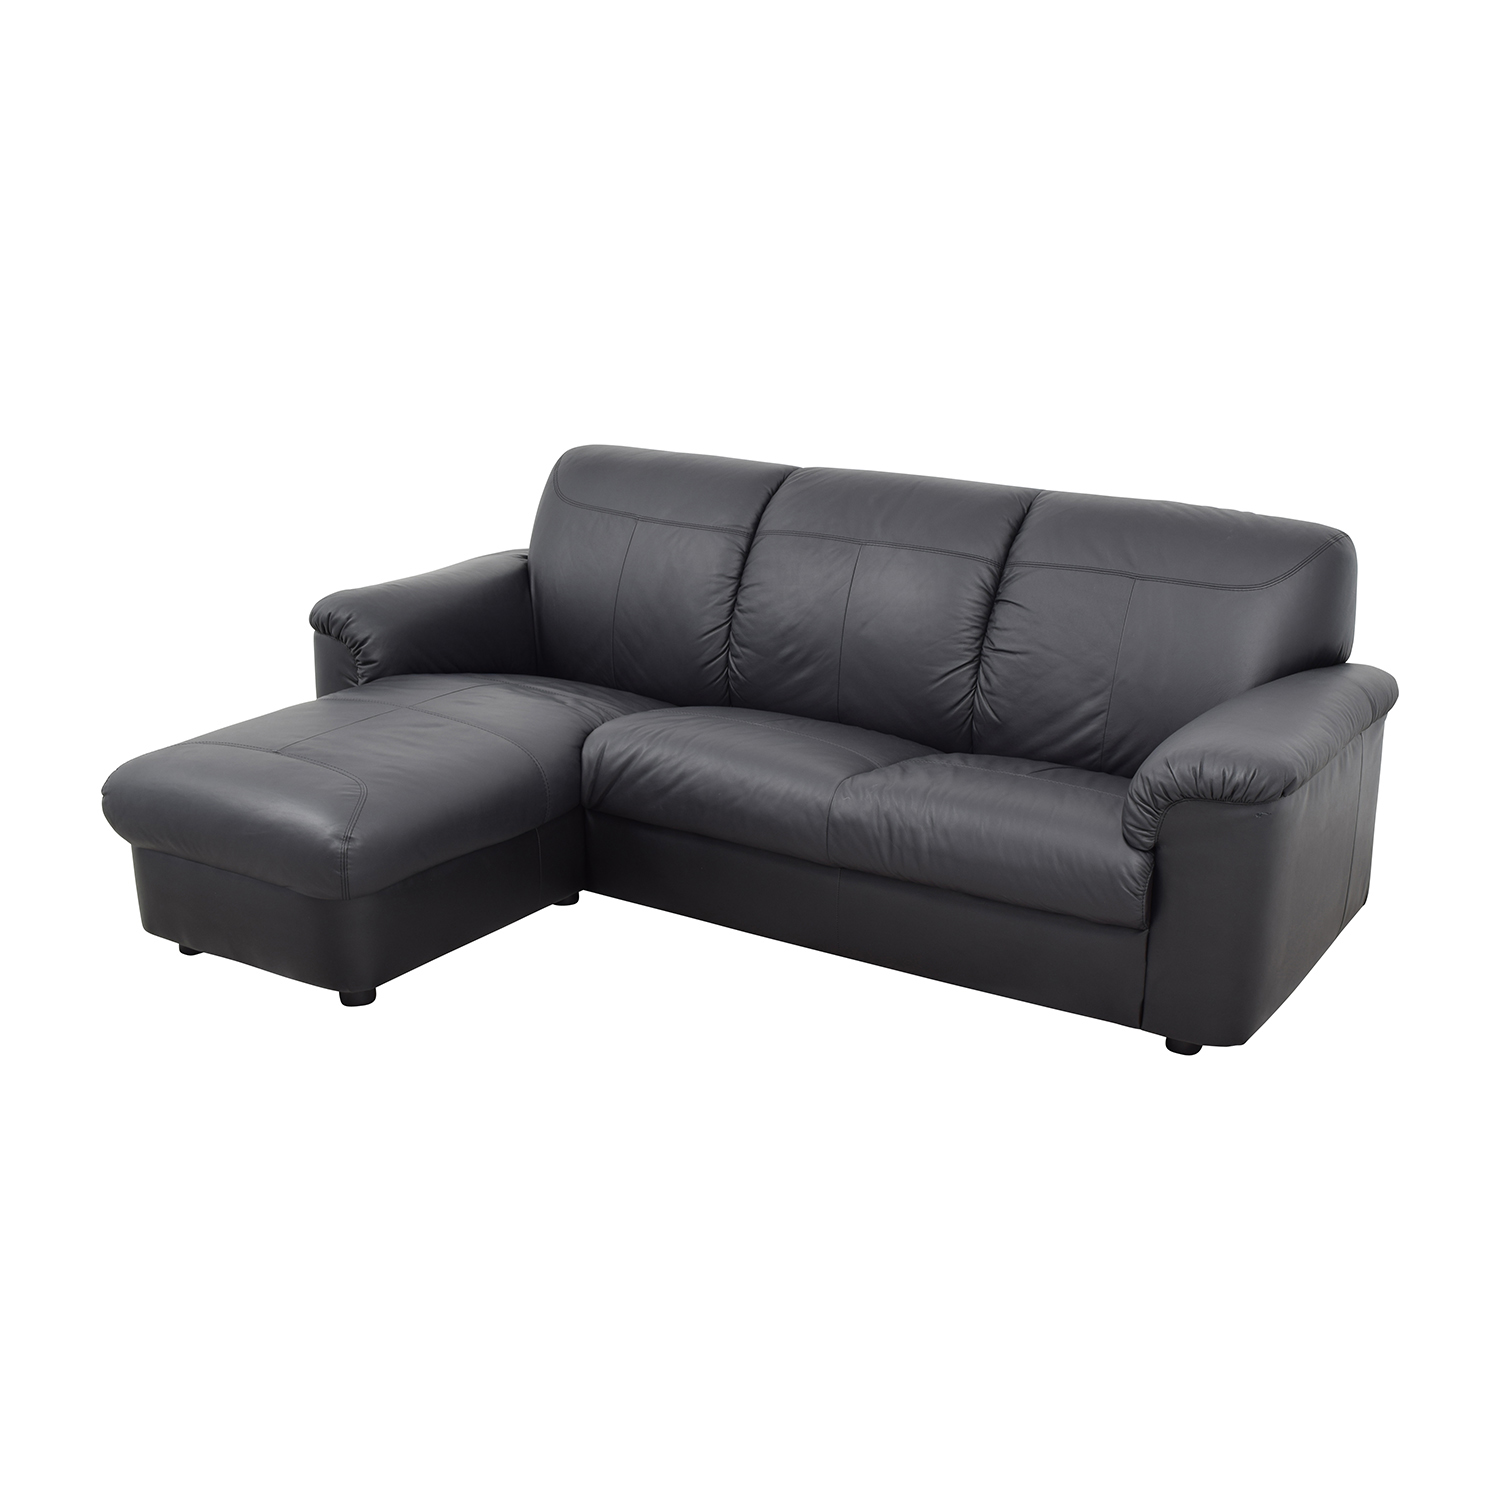 41 Off Ikea Ikea Black 3 Piece Leather Sectional Sofas